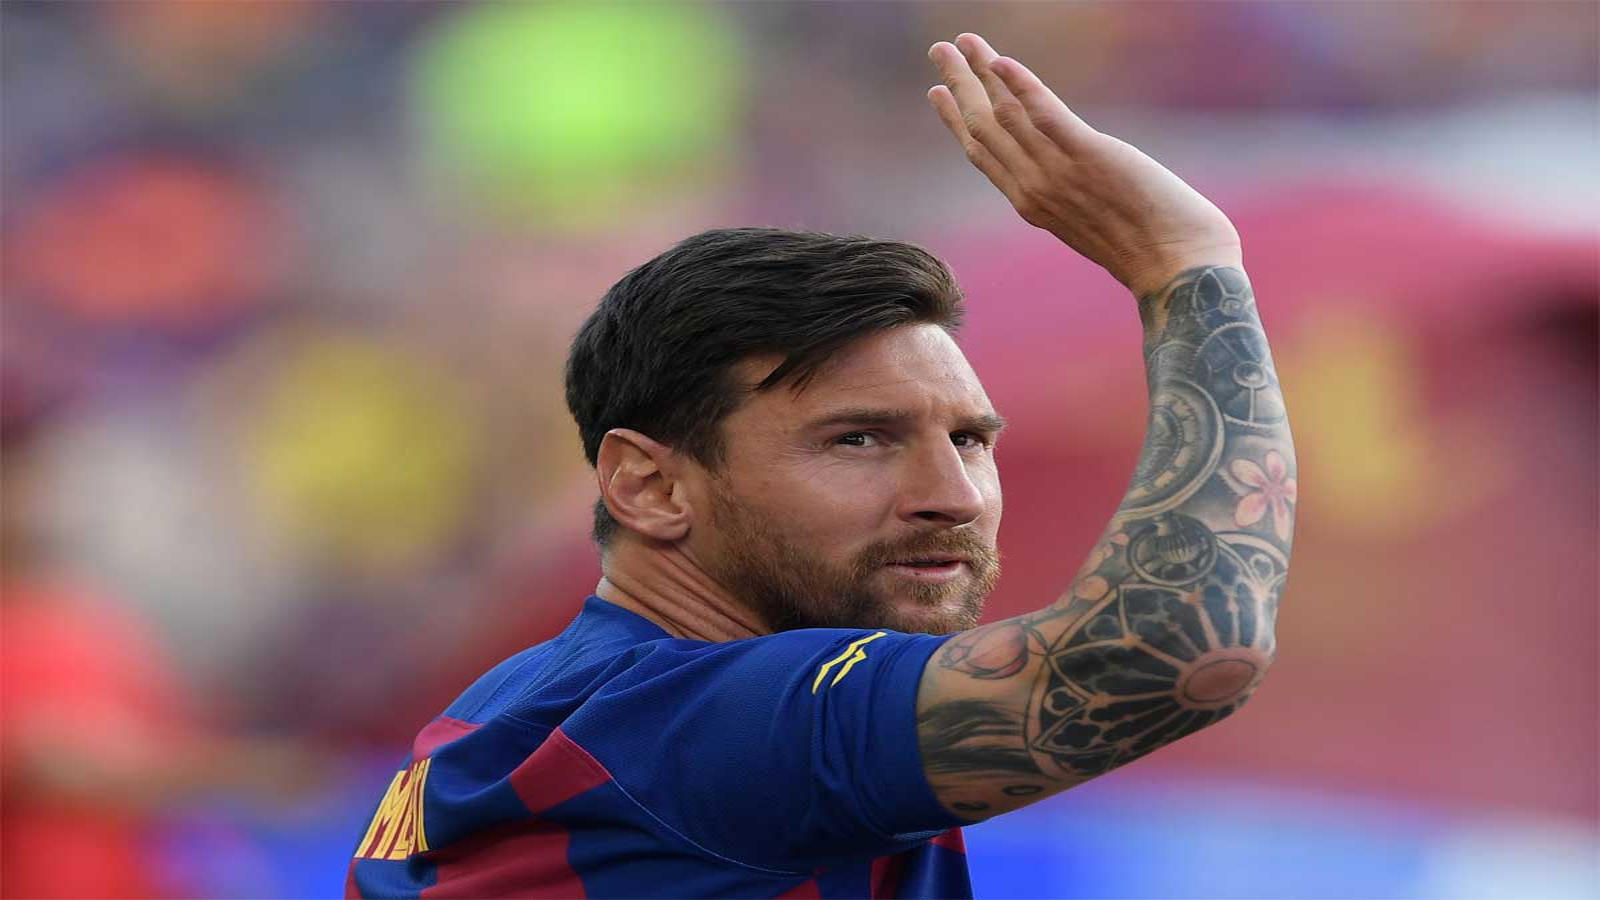 messi-has-shown-he-is-ready-to-put-the-boot-in-at-barcelona